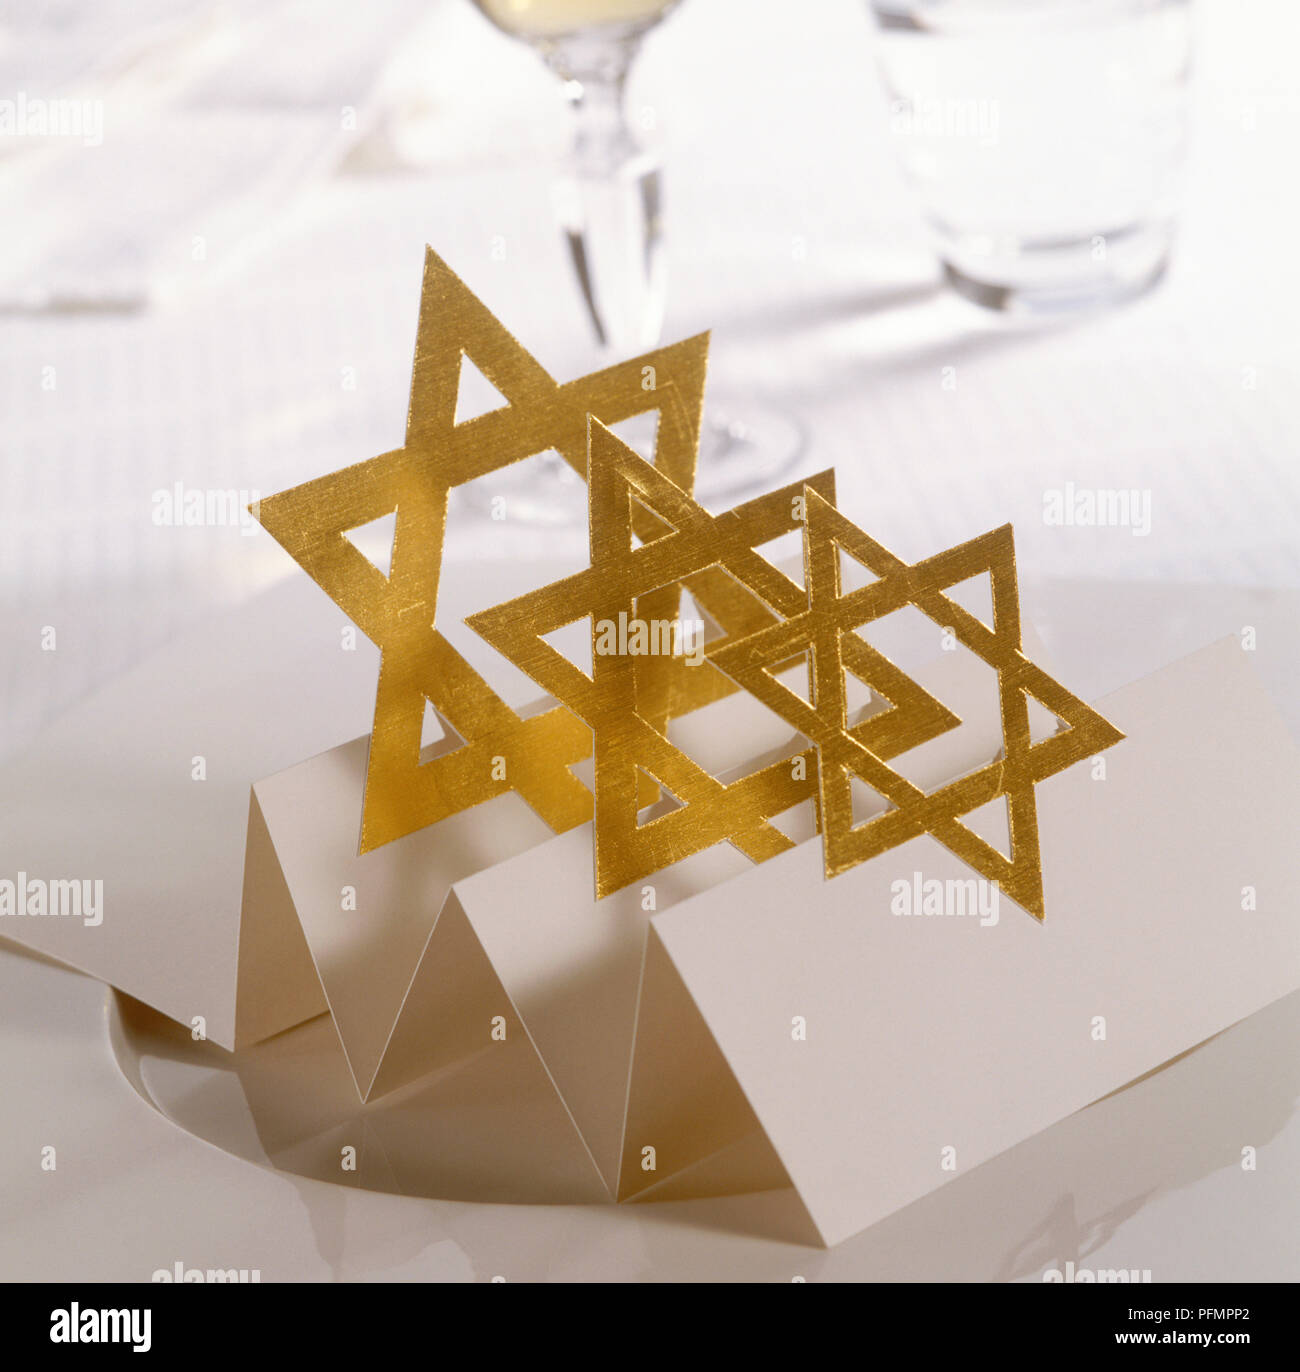 Star-of-David card used as place setting on table - Stock Image